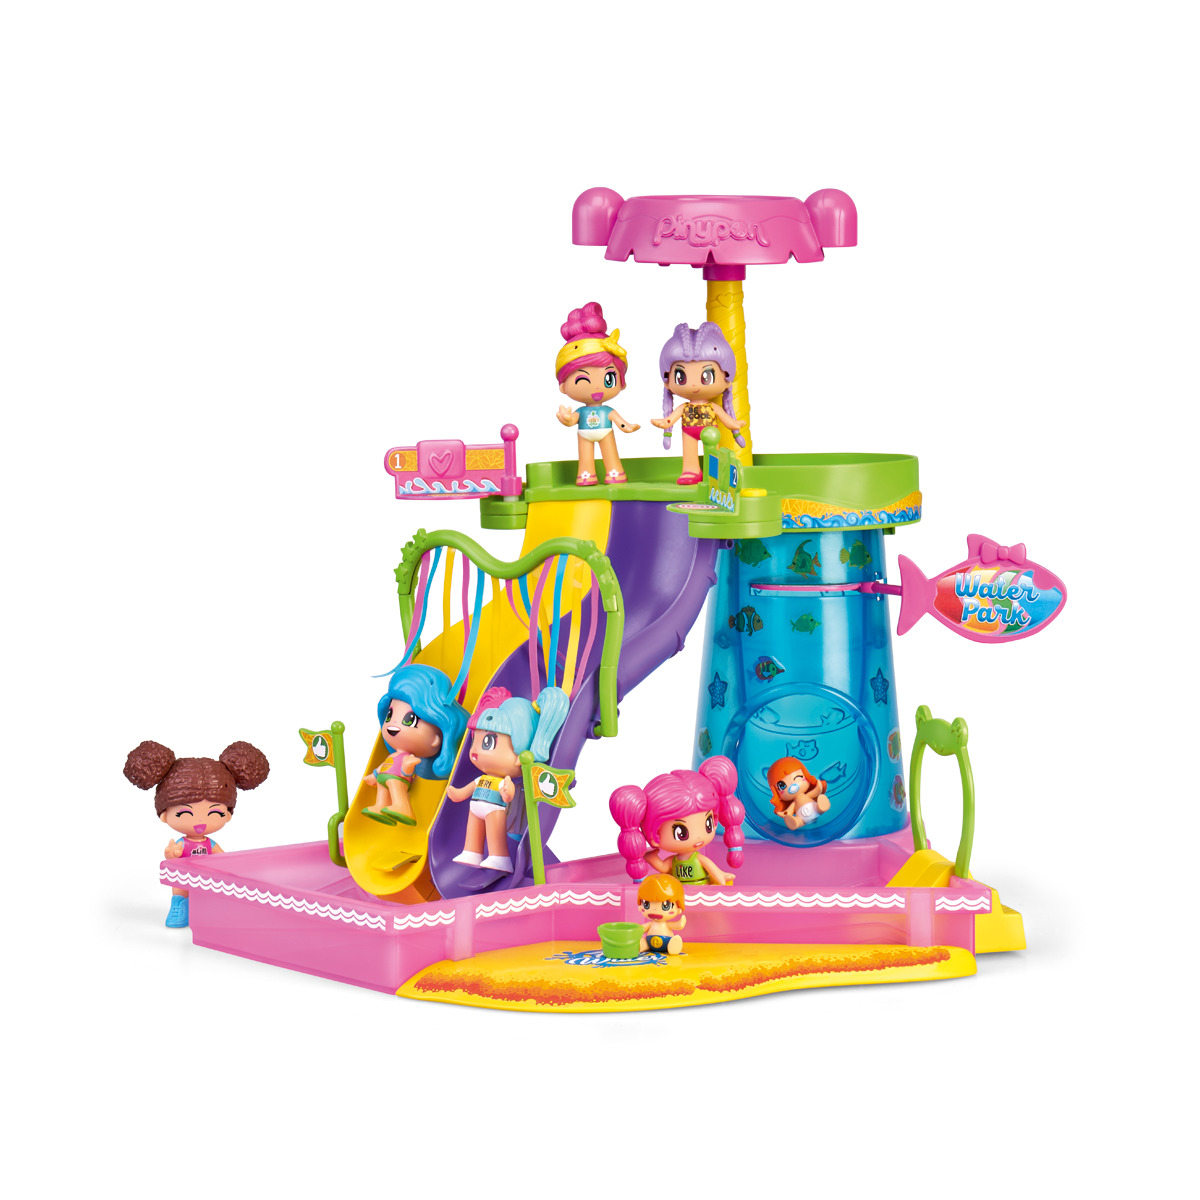 PINYPON WOW WATER PARK 15562 - V41821